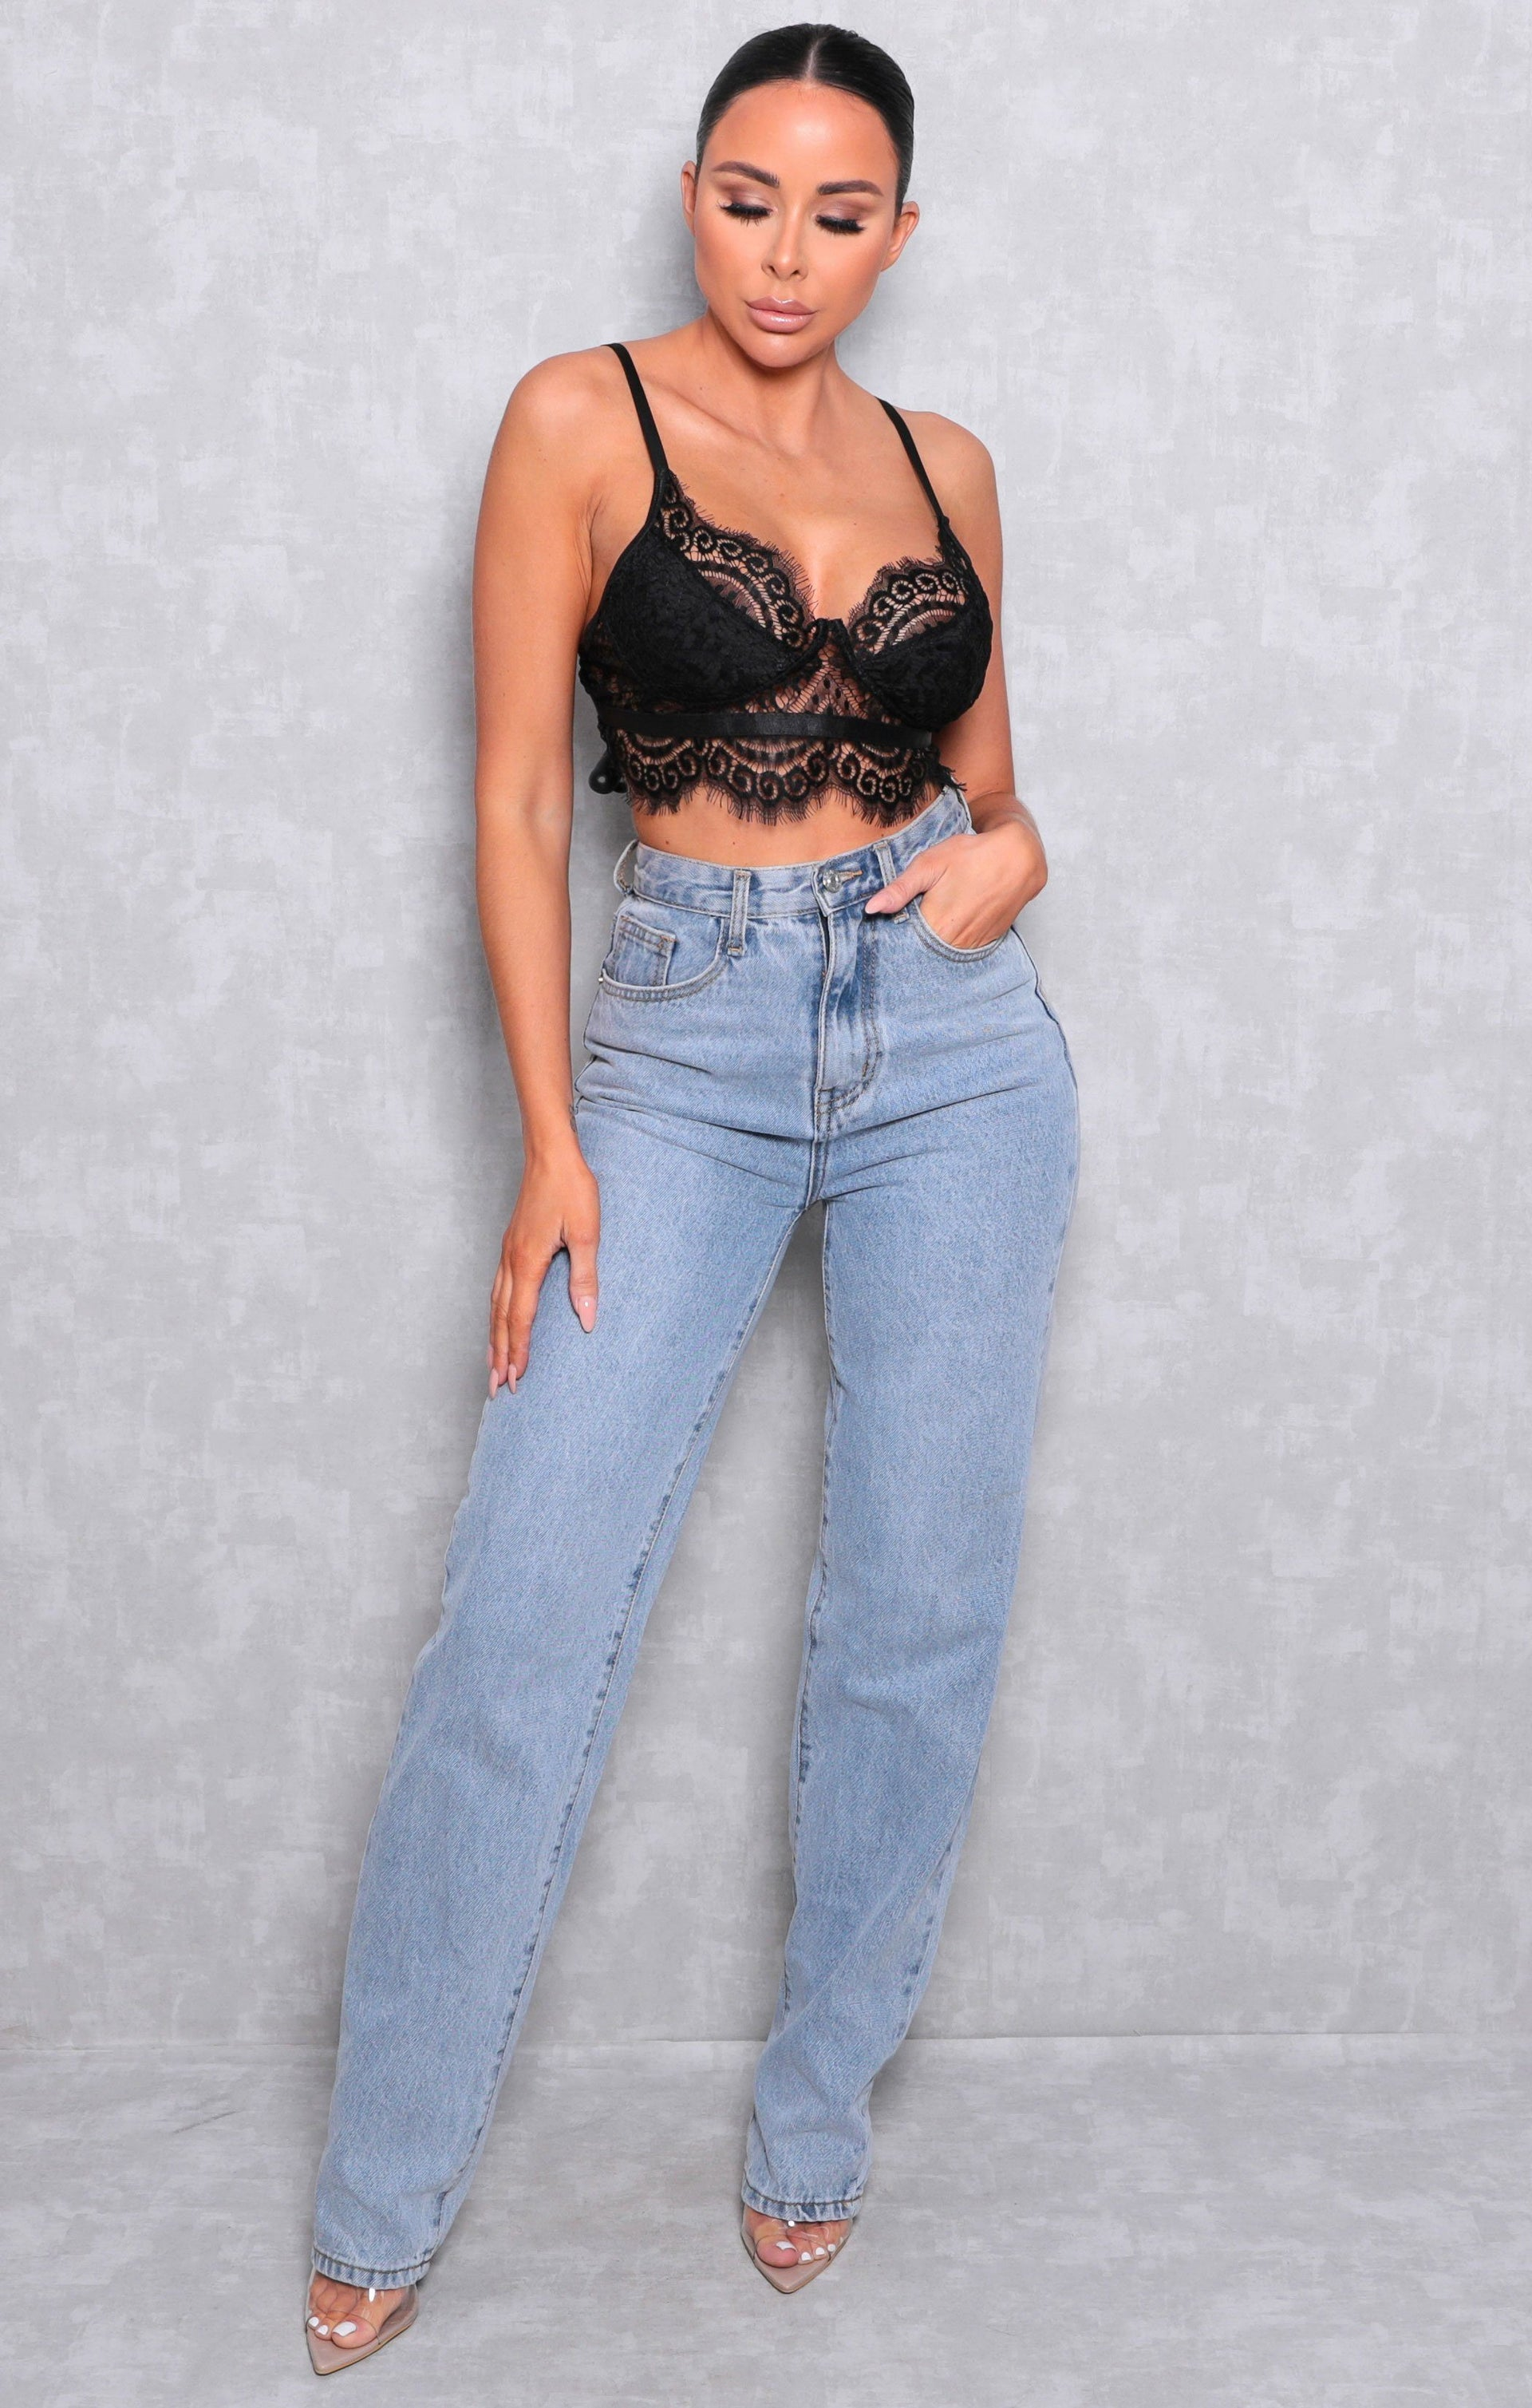 Black Lace Eyelash Bralette Top - Dagmar